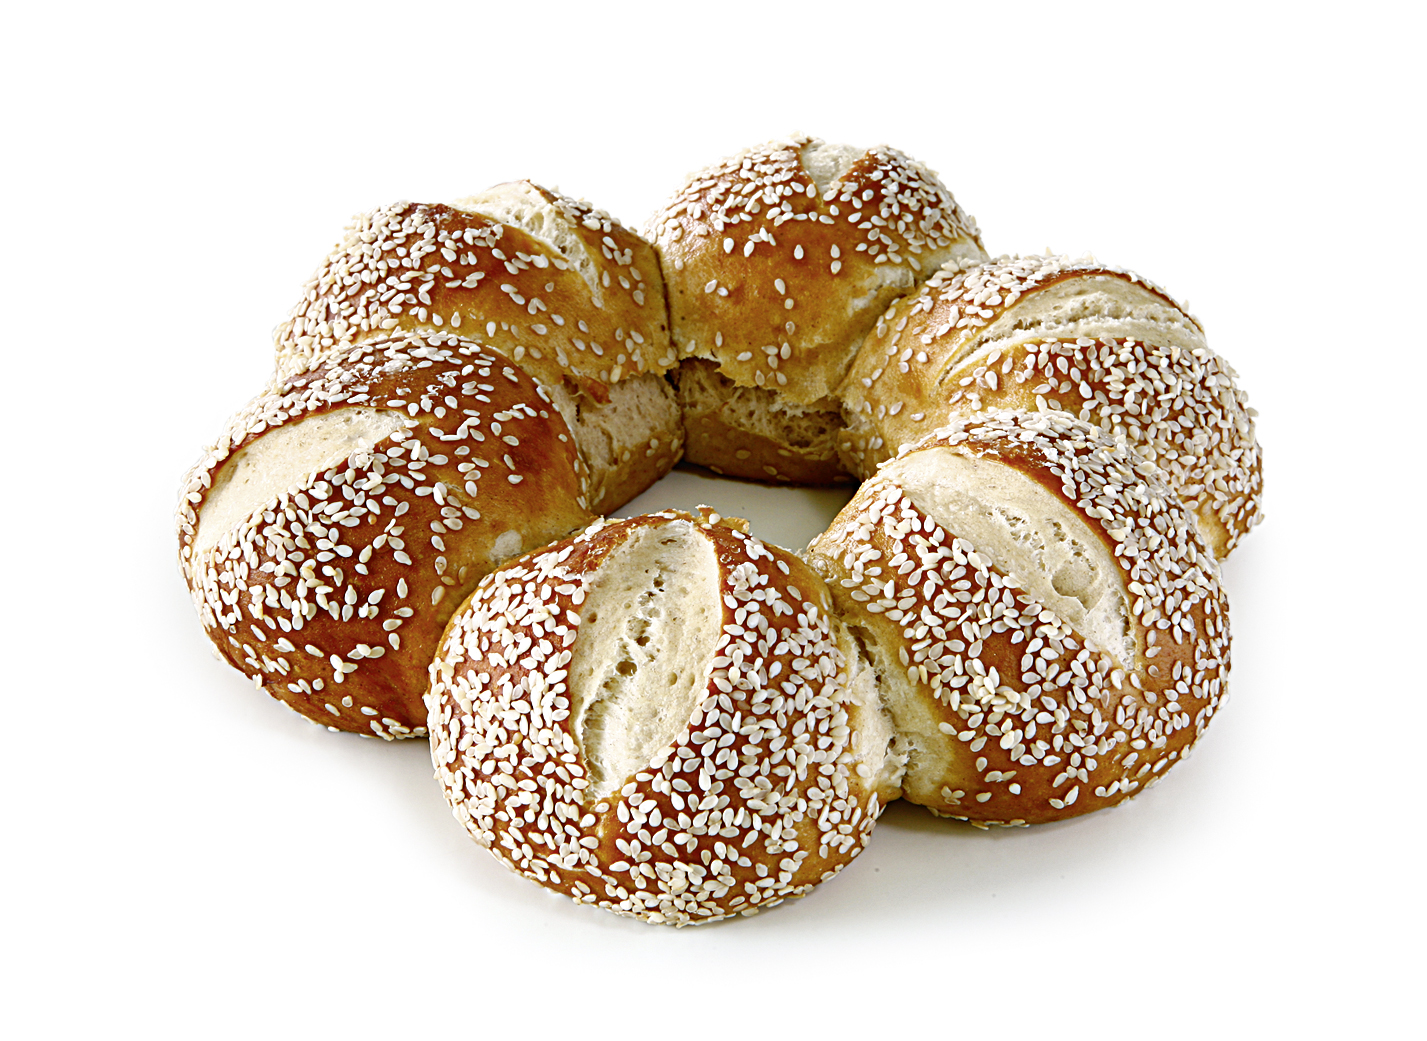 Lye Crown Sesame - 6 rolls sprinkled with sesame baked against each other.